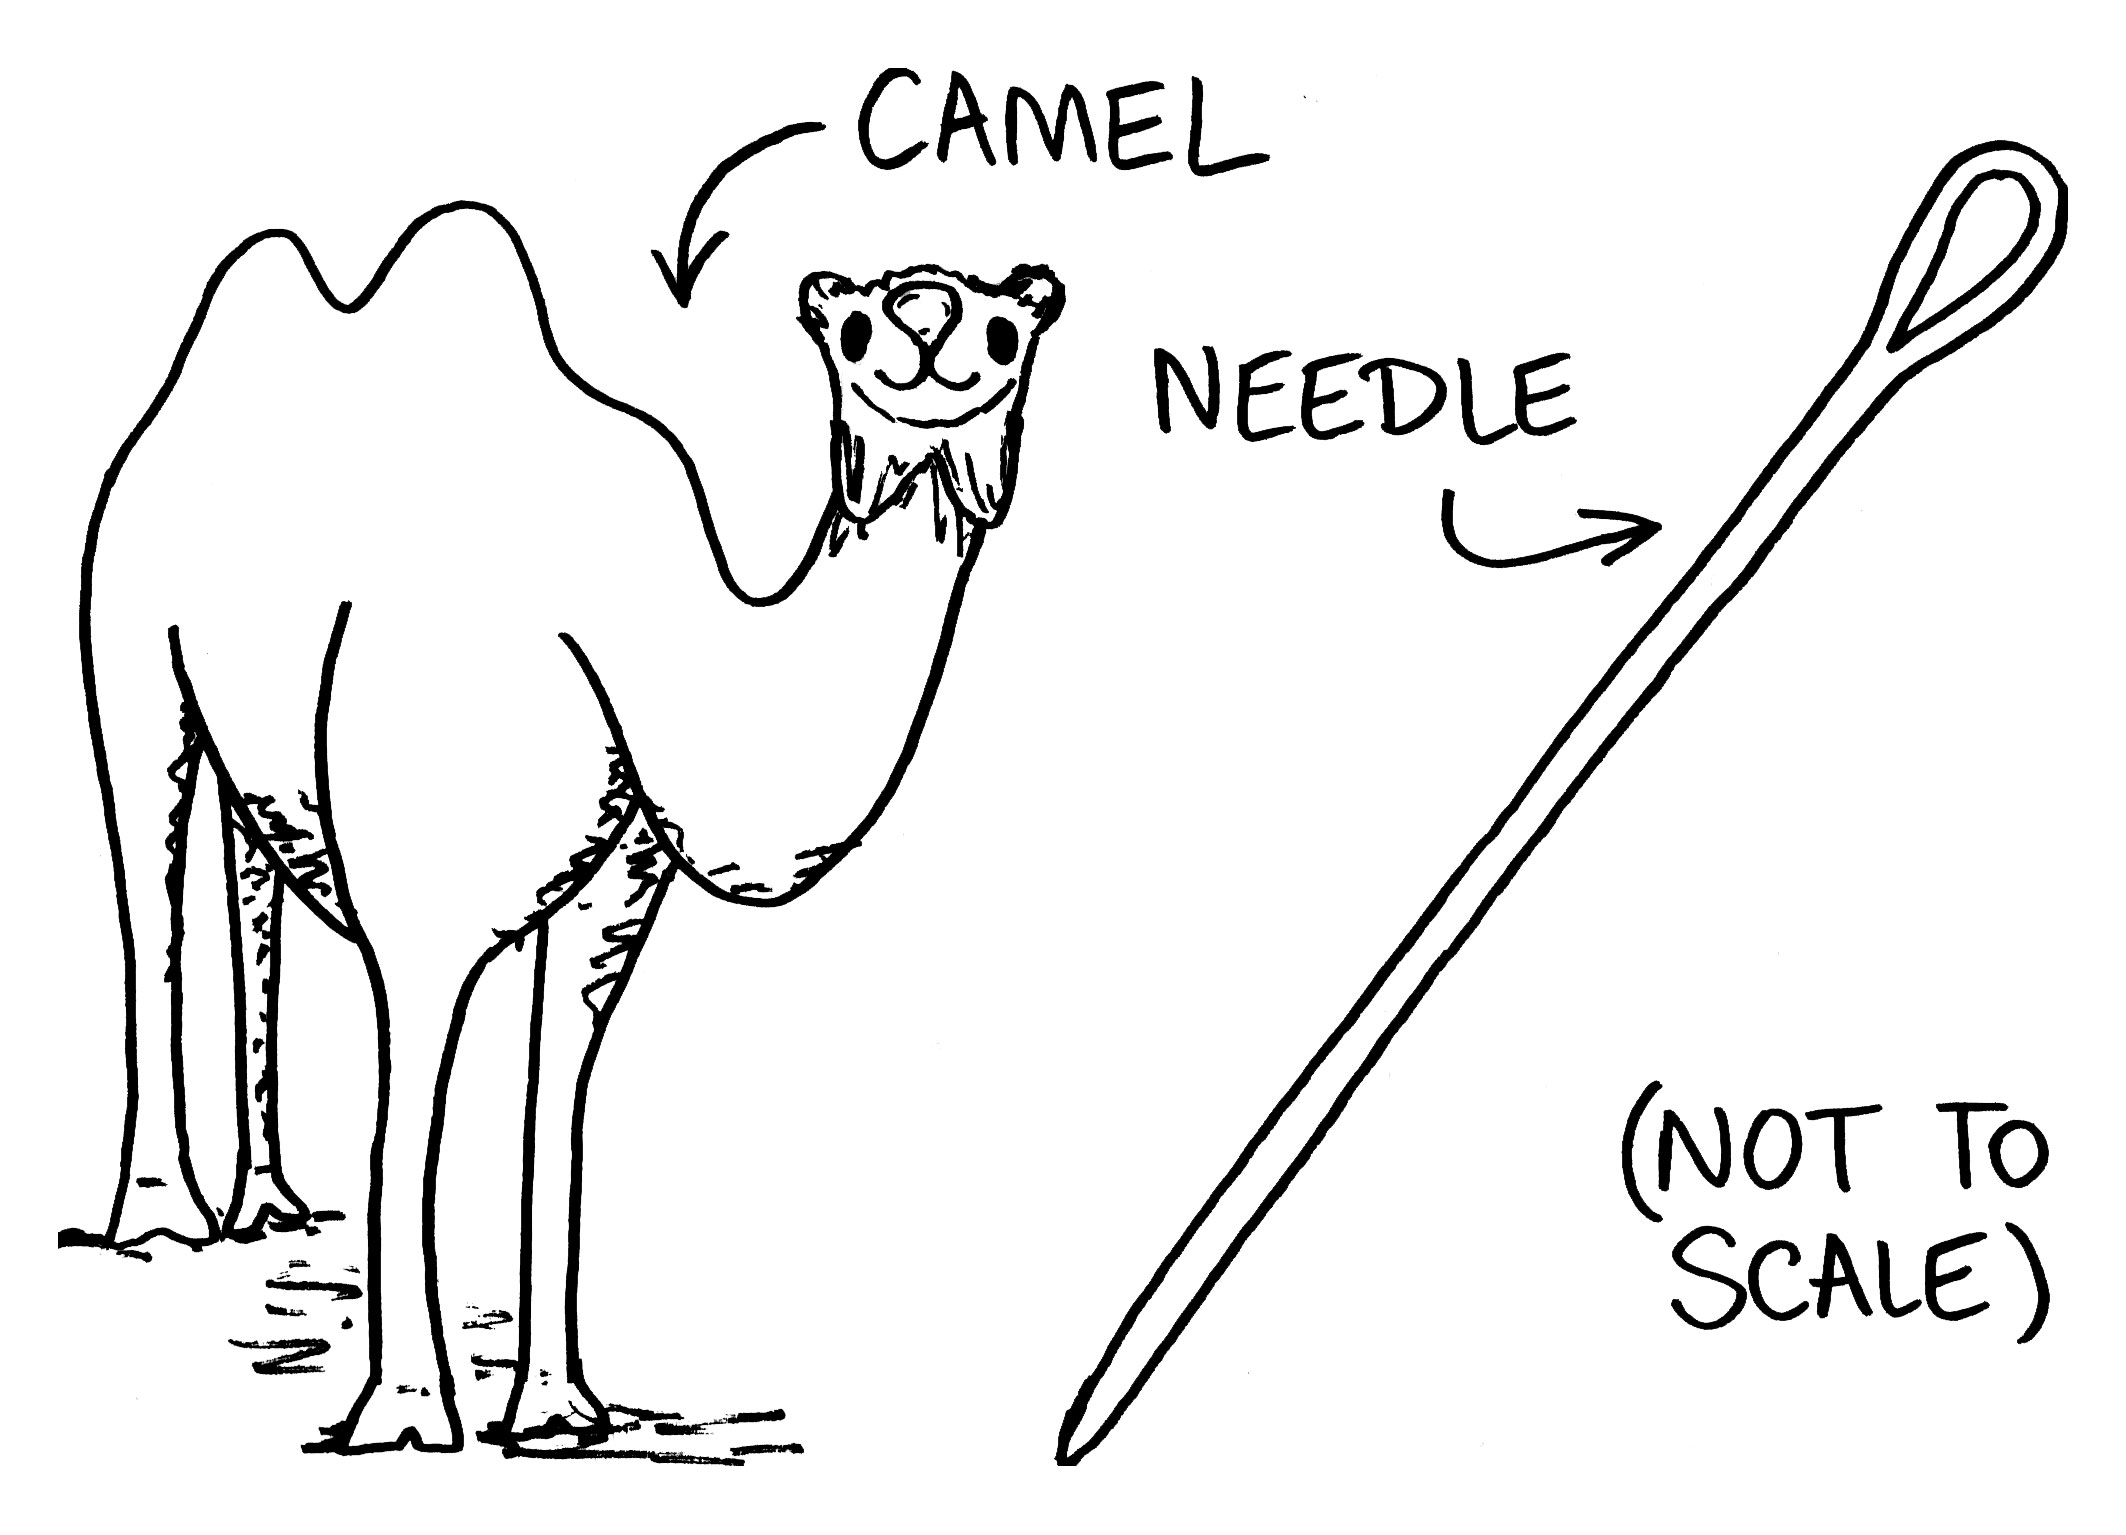 The camel and the needle (or how to get into heaven